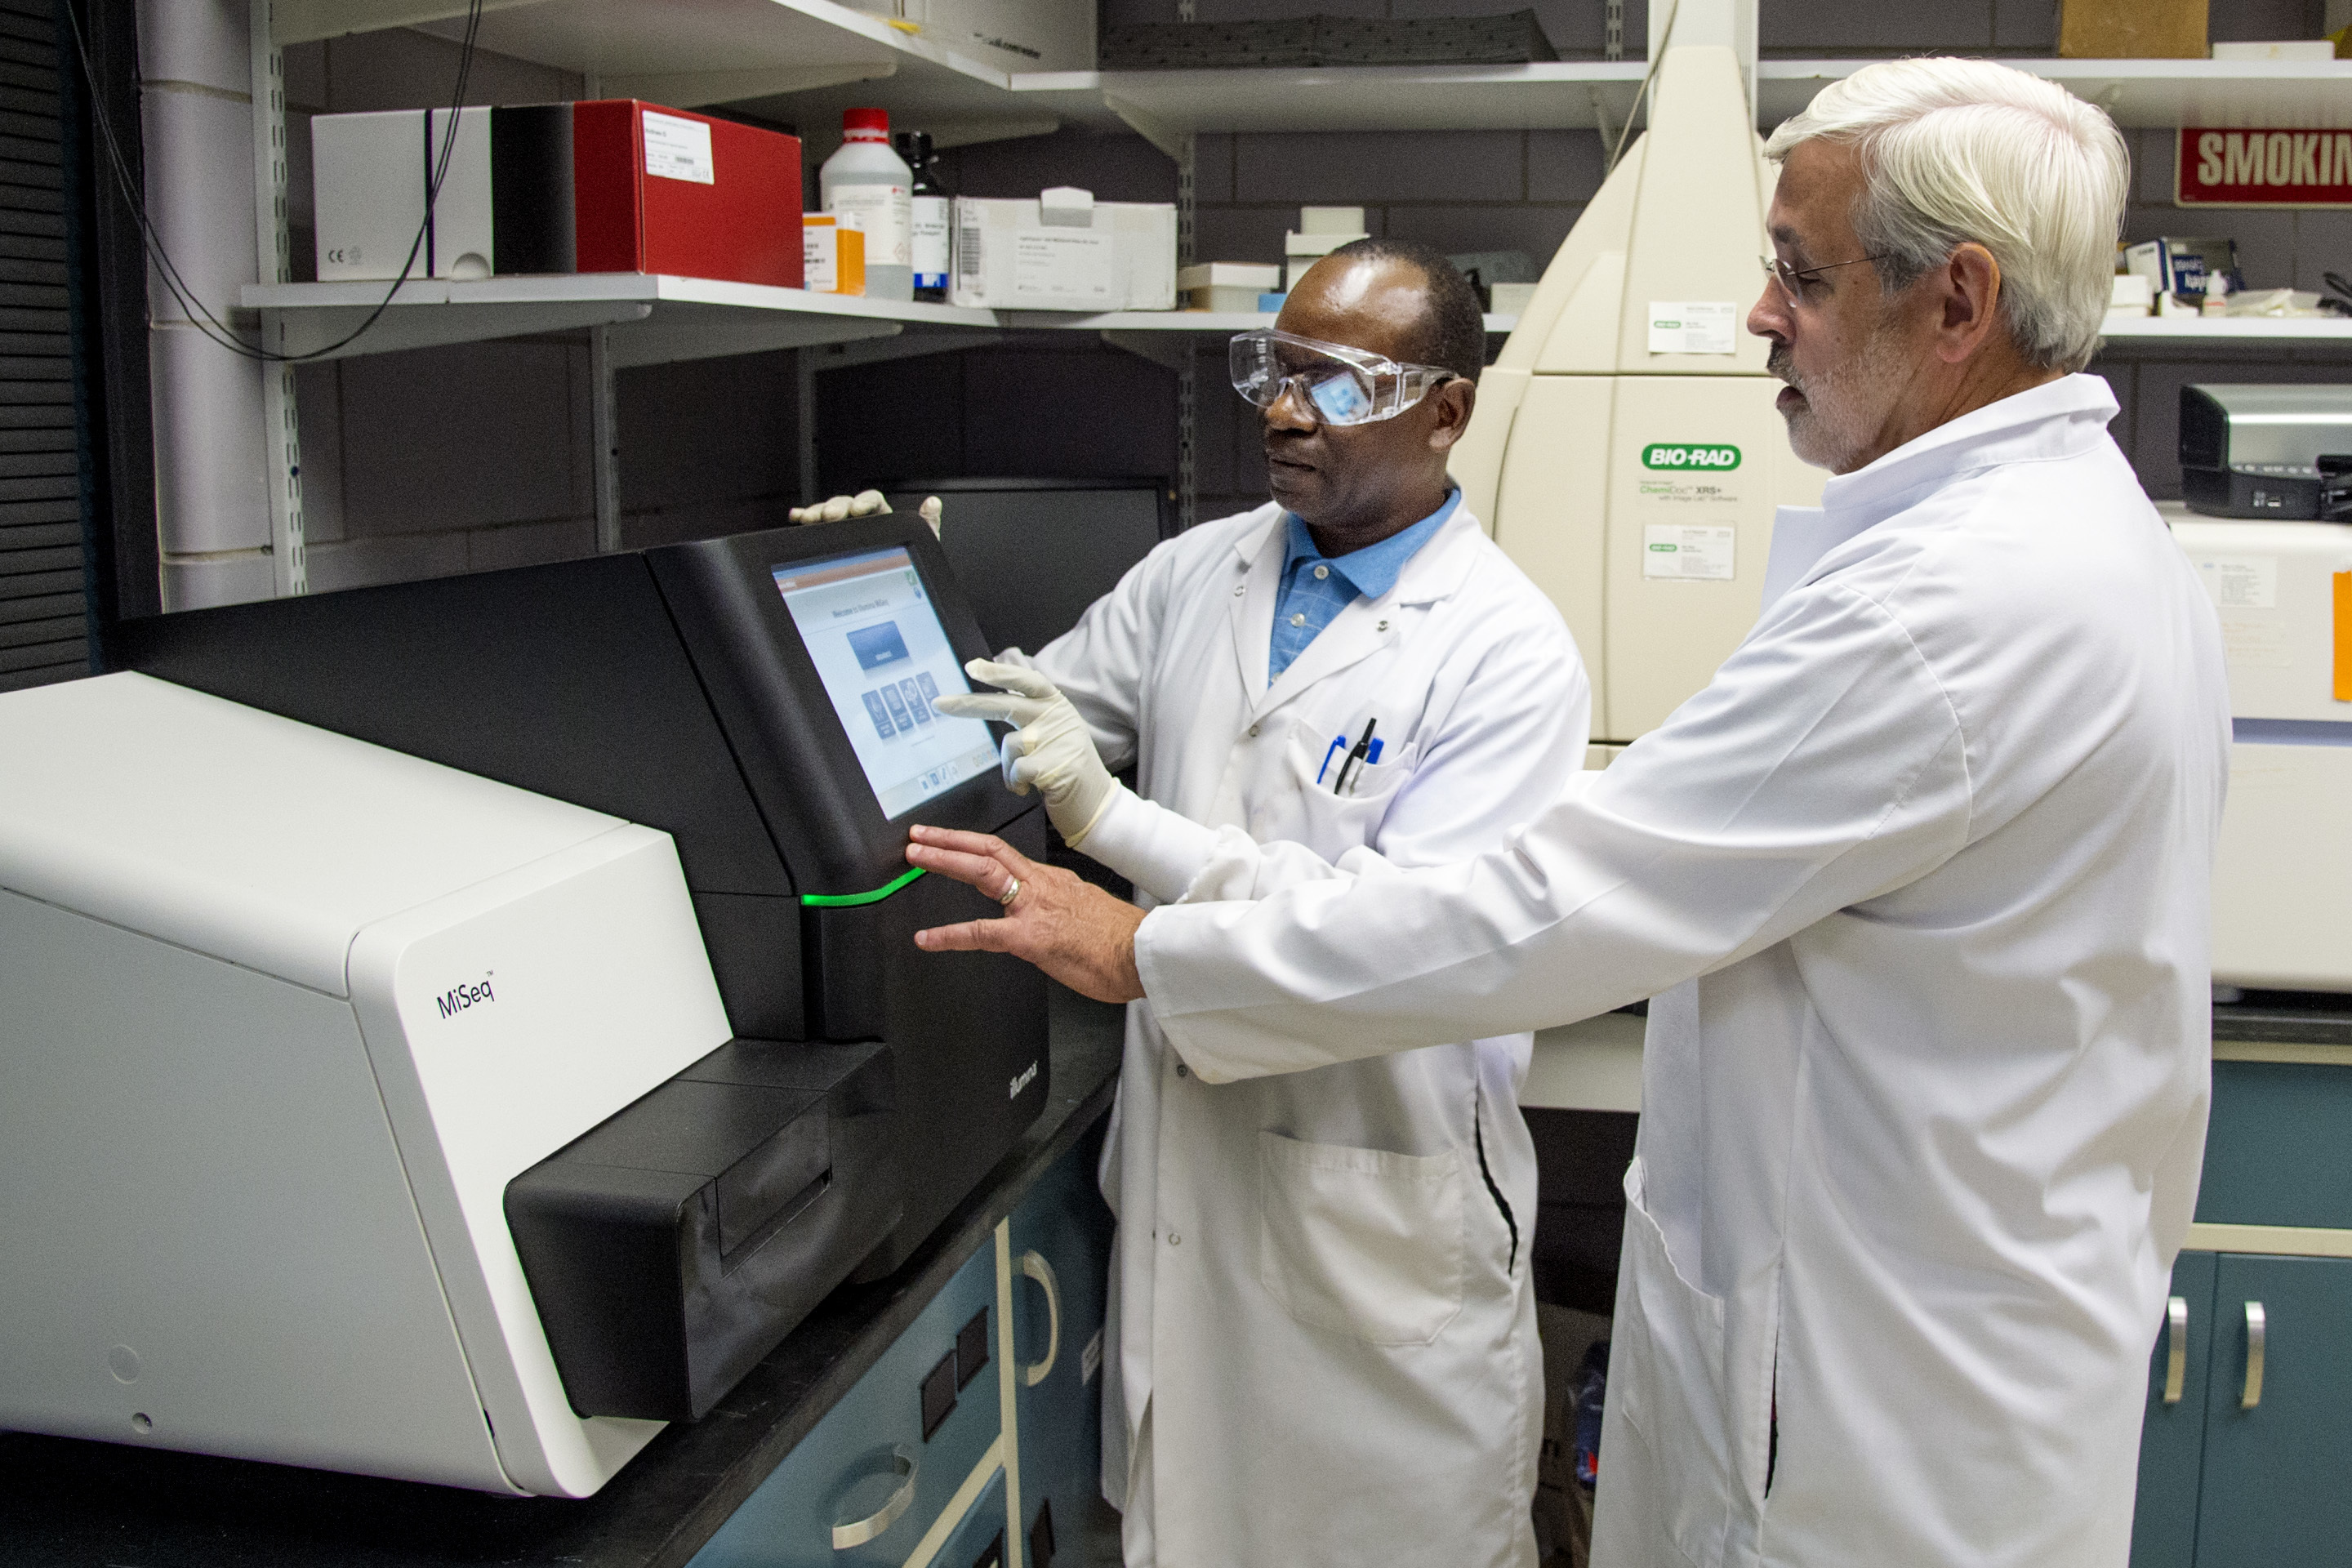 LeChevallier, Dr. Water — (right) vice president and chief environmental officer for American Water Works Company, Inc., and Dr. Patrick JJemba (cq), a microbiologist, work at a microbial sequencer at the treatment plant in Delran August 15, 2017. The sequencer identifies the DNA of all the waste water microbes in the water to ensure proper cleaning before distribution. A Super Computer is required to crunch the information. CLEM MURRAY / Staff Photographer